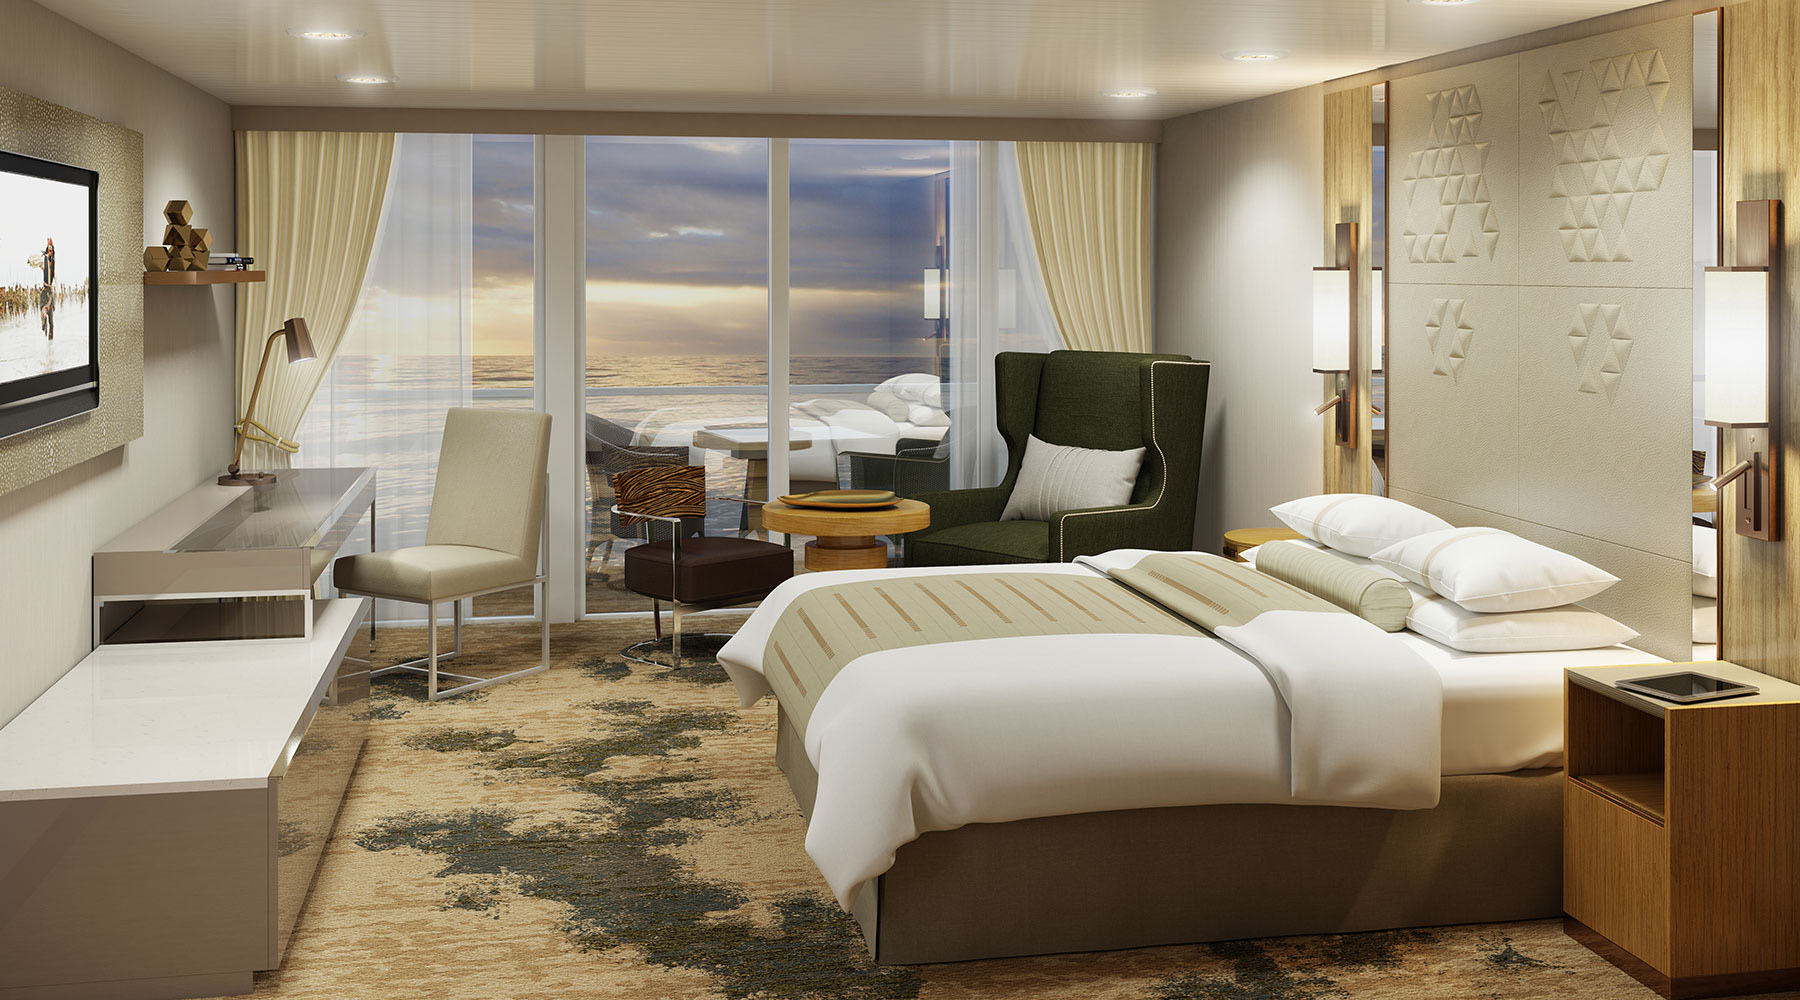 Reimagine Azamara - See The Renderings!